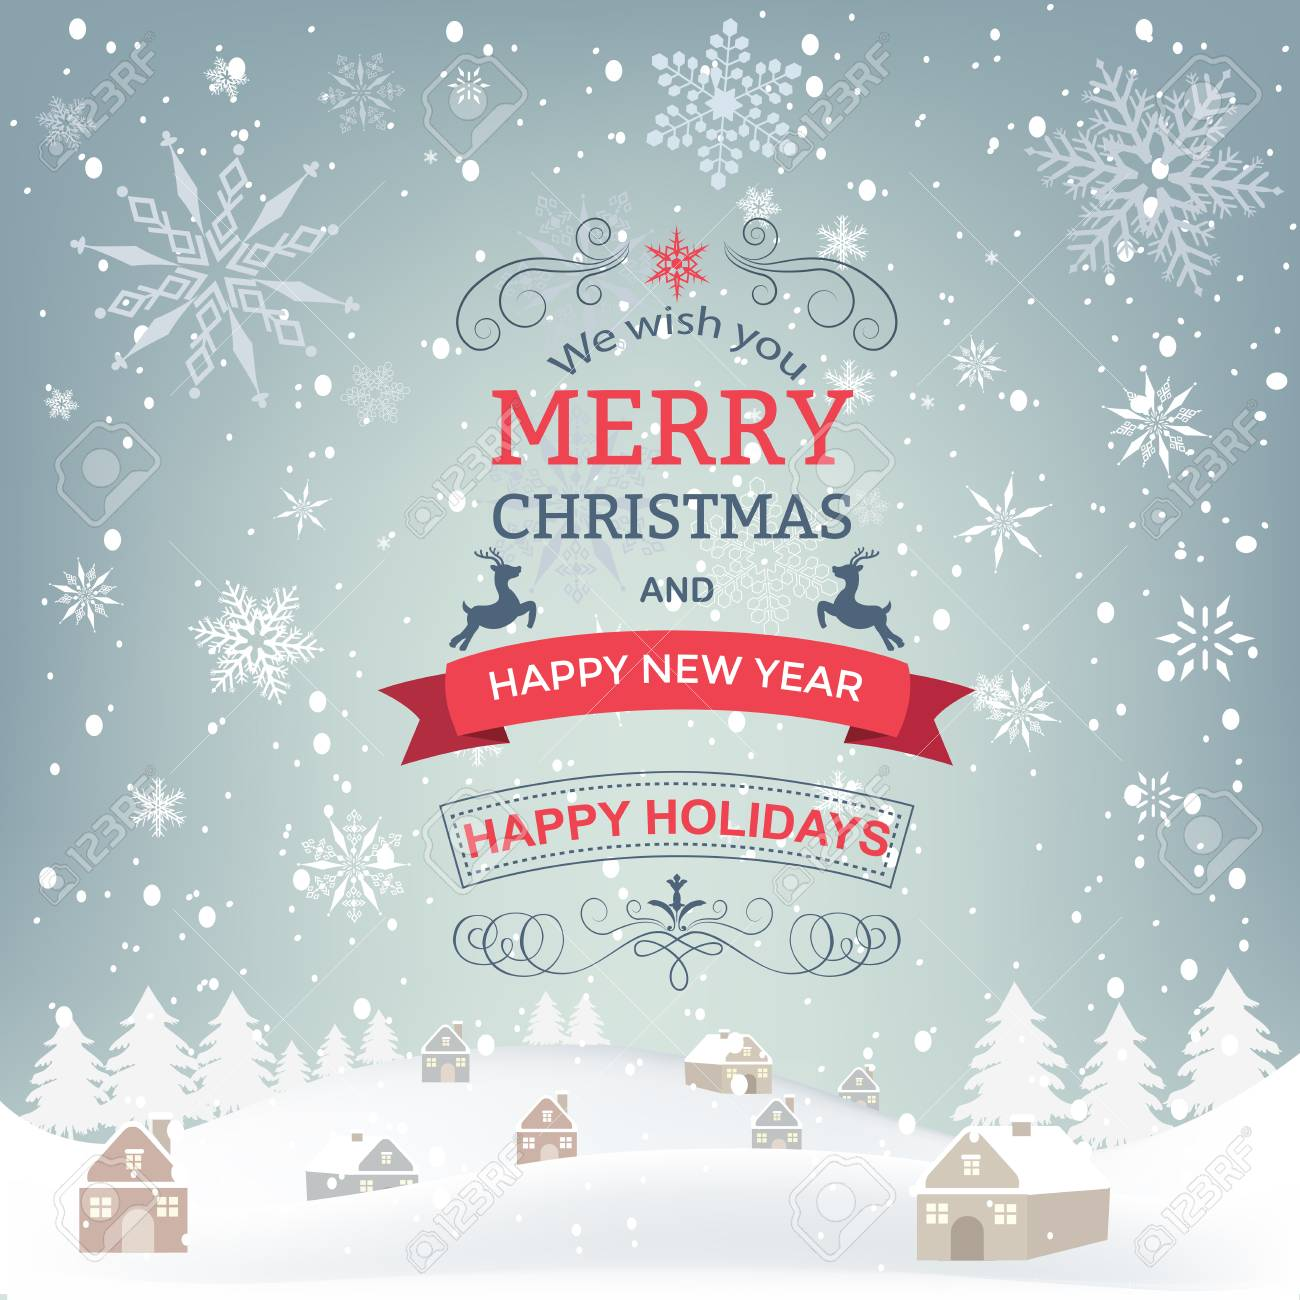 New Year And Christmas Greetings Design Winter Holidays Landscape